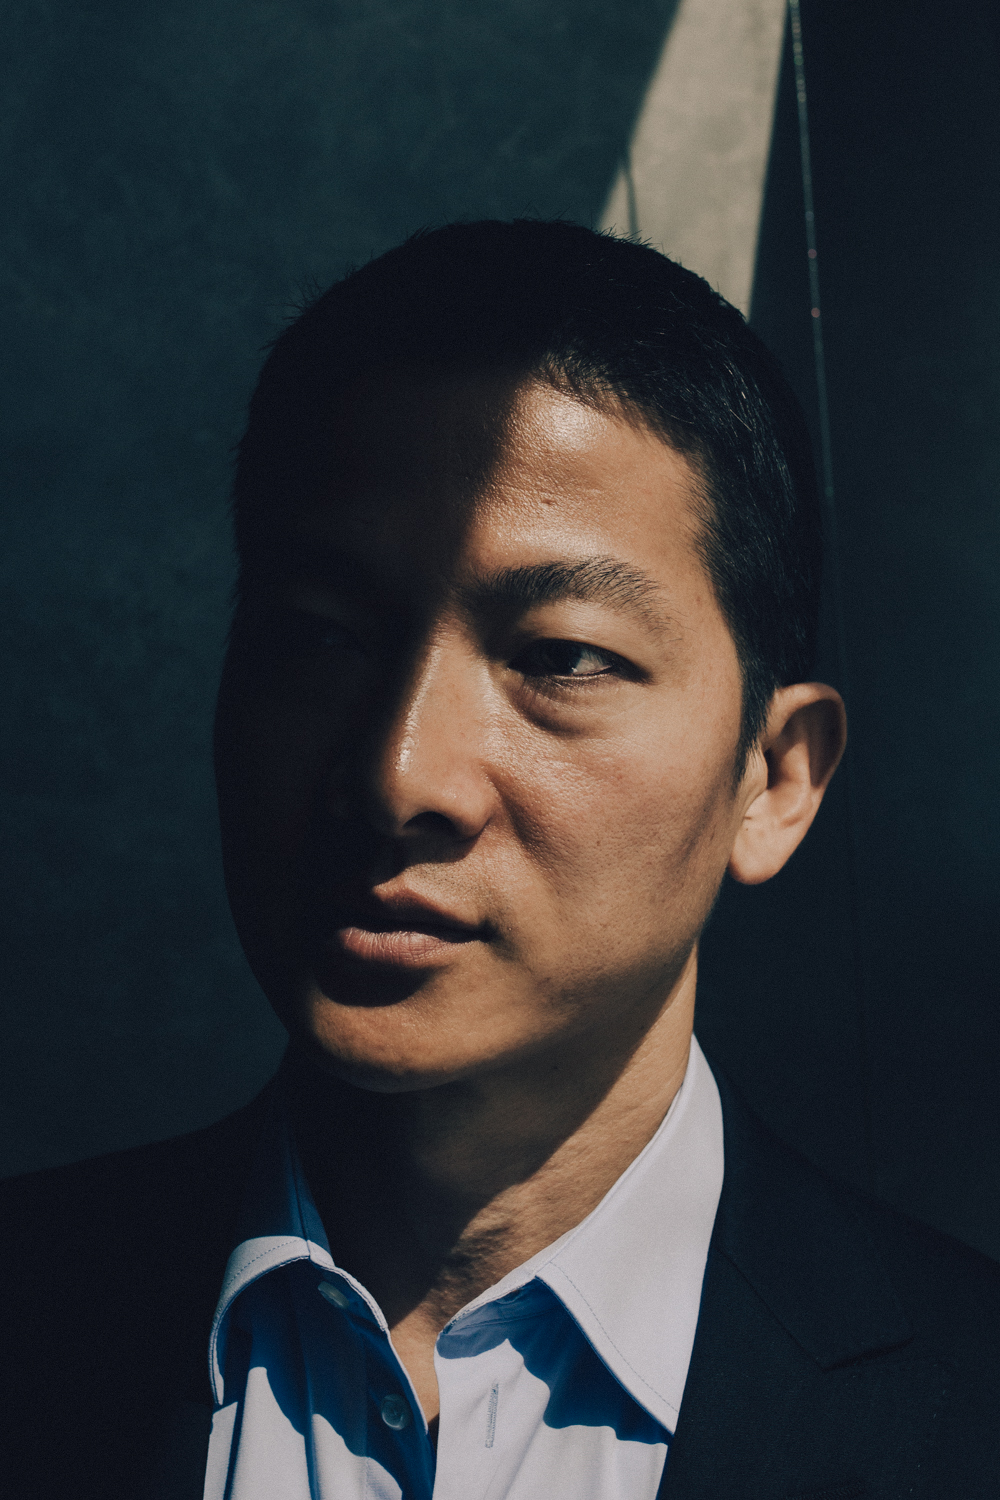 Peng Xiao – who's company Pegasus works under UAE cyber security specialists DarkMatter – photographed at the DarkMatter HQ in Abu Dhabi for Inc. Arabia.